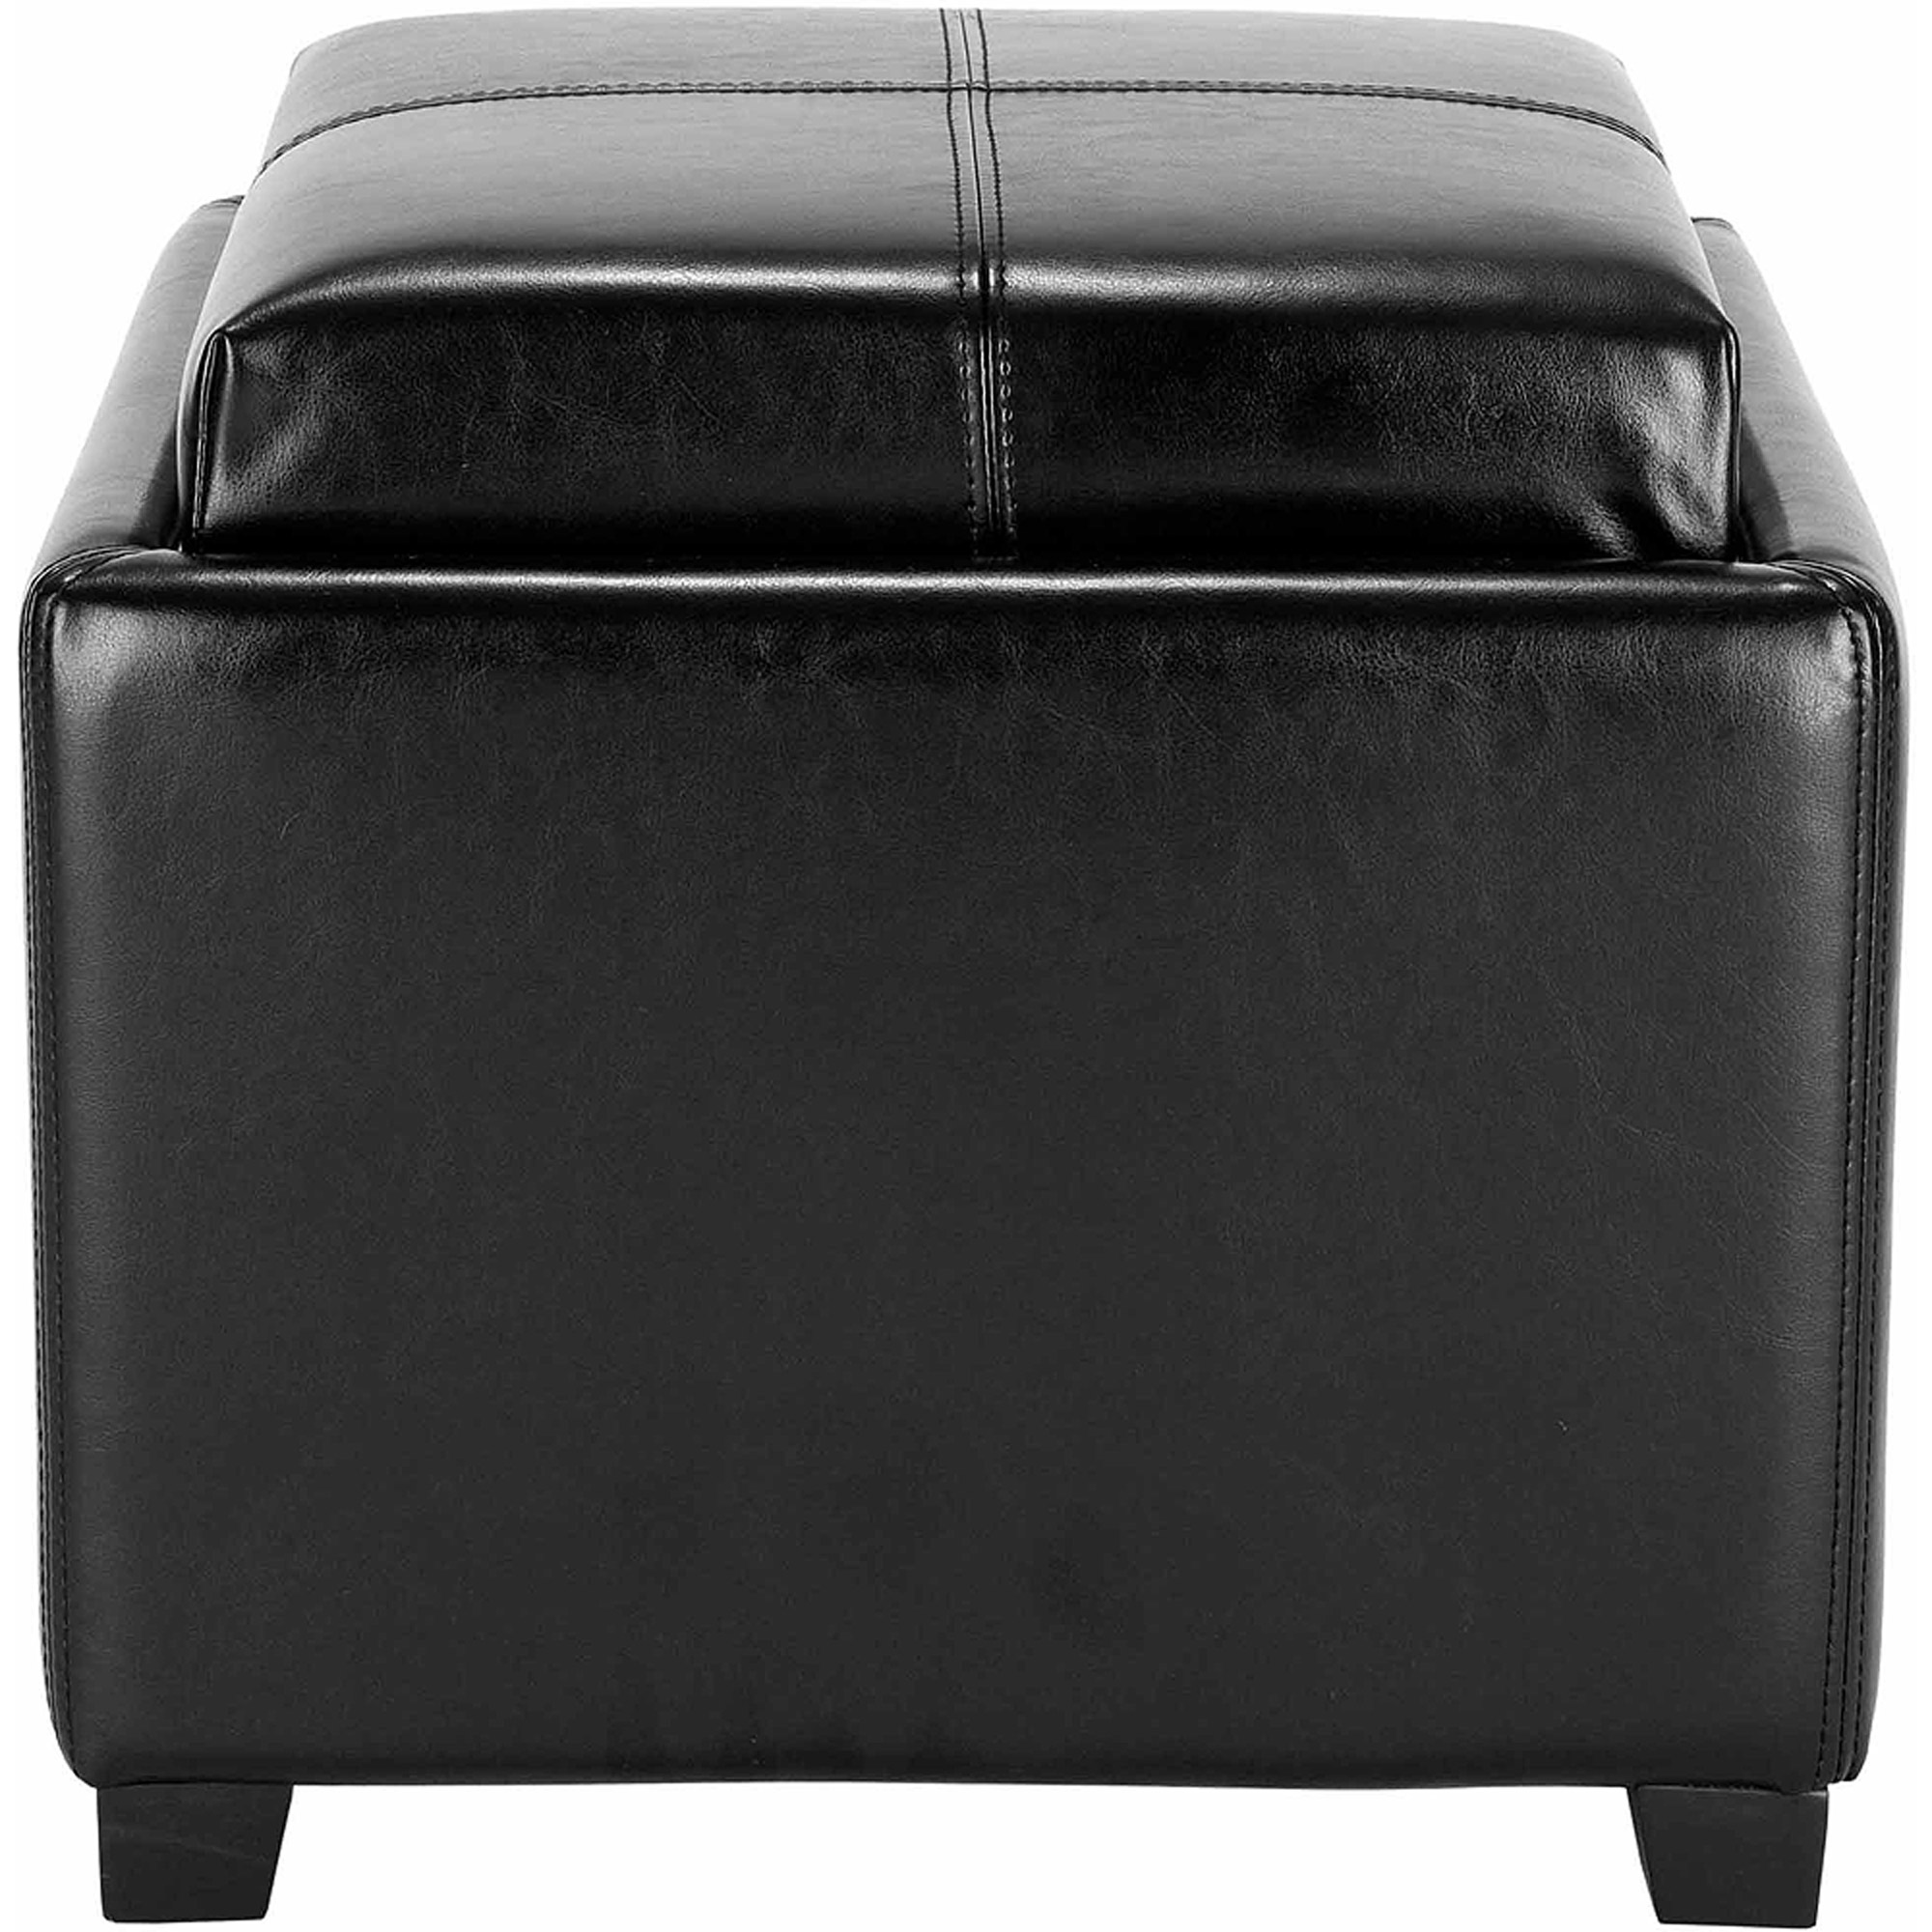 Safavieh Harrison Bicast Leather Upholstered Single Tray Ottoman, Multiple Colors